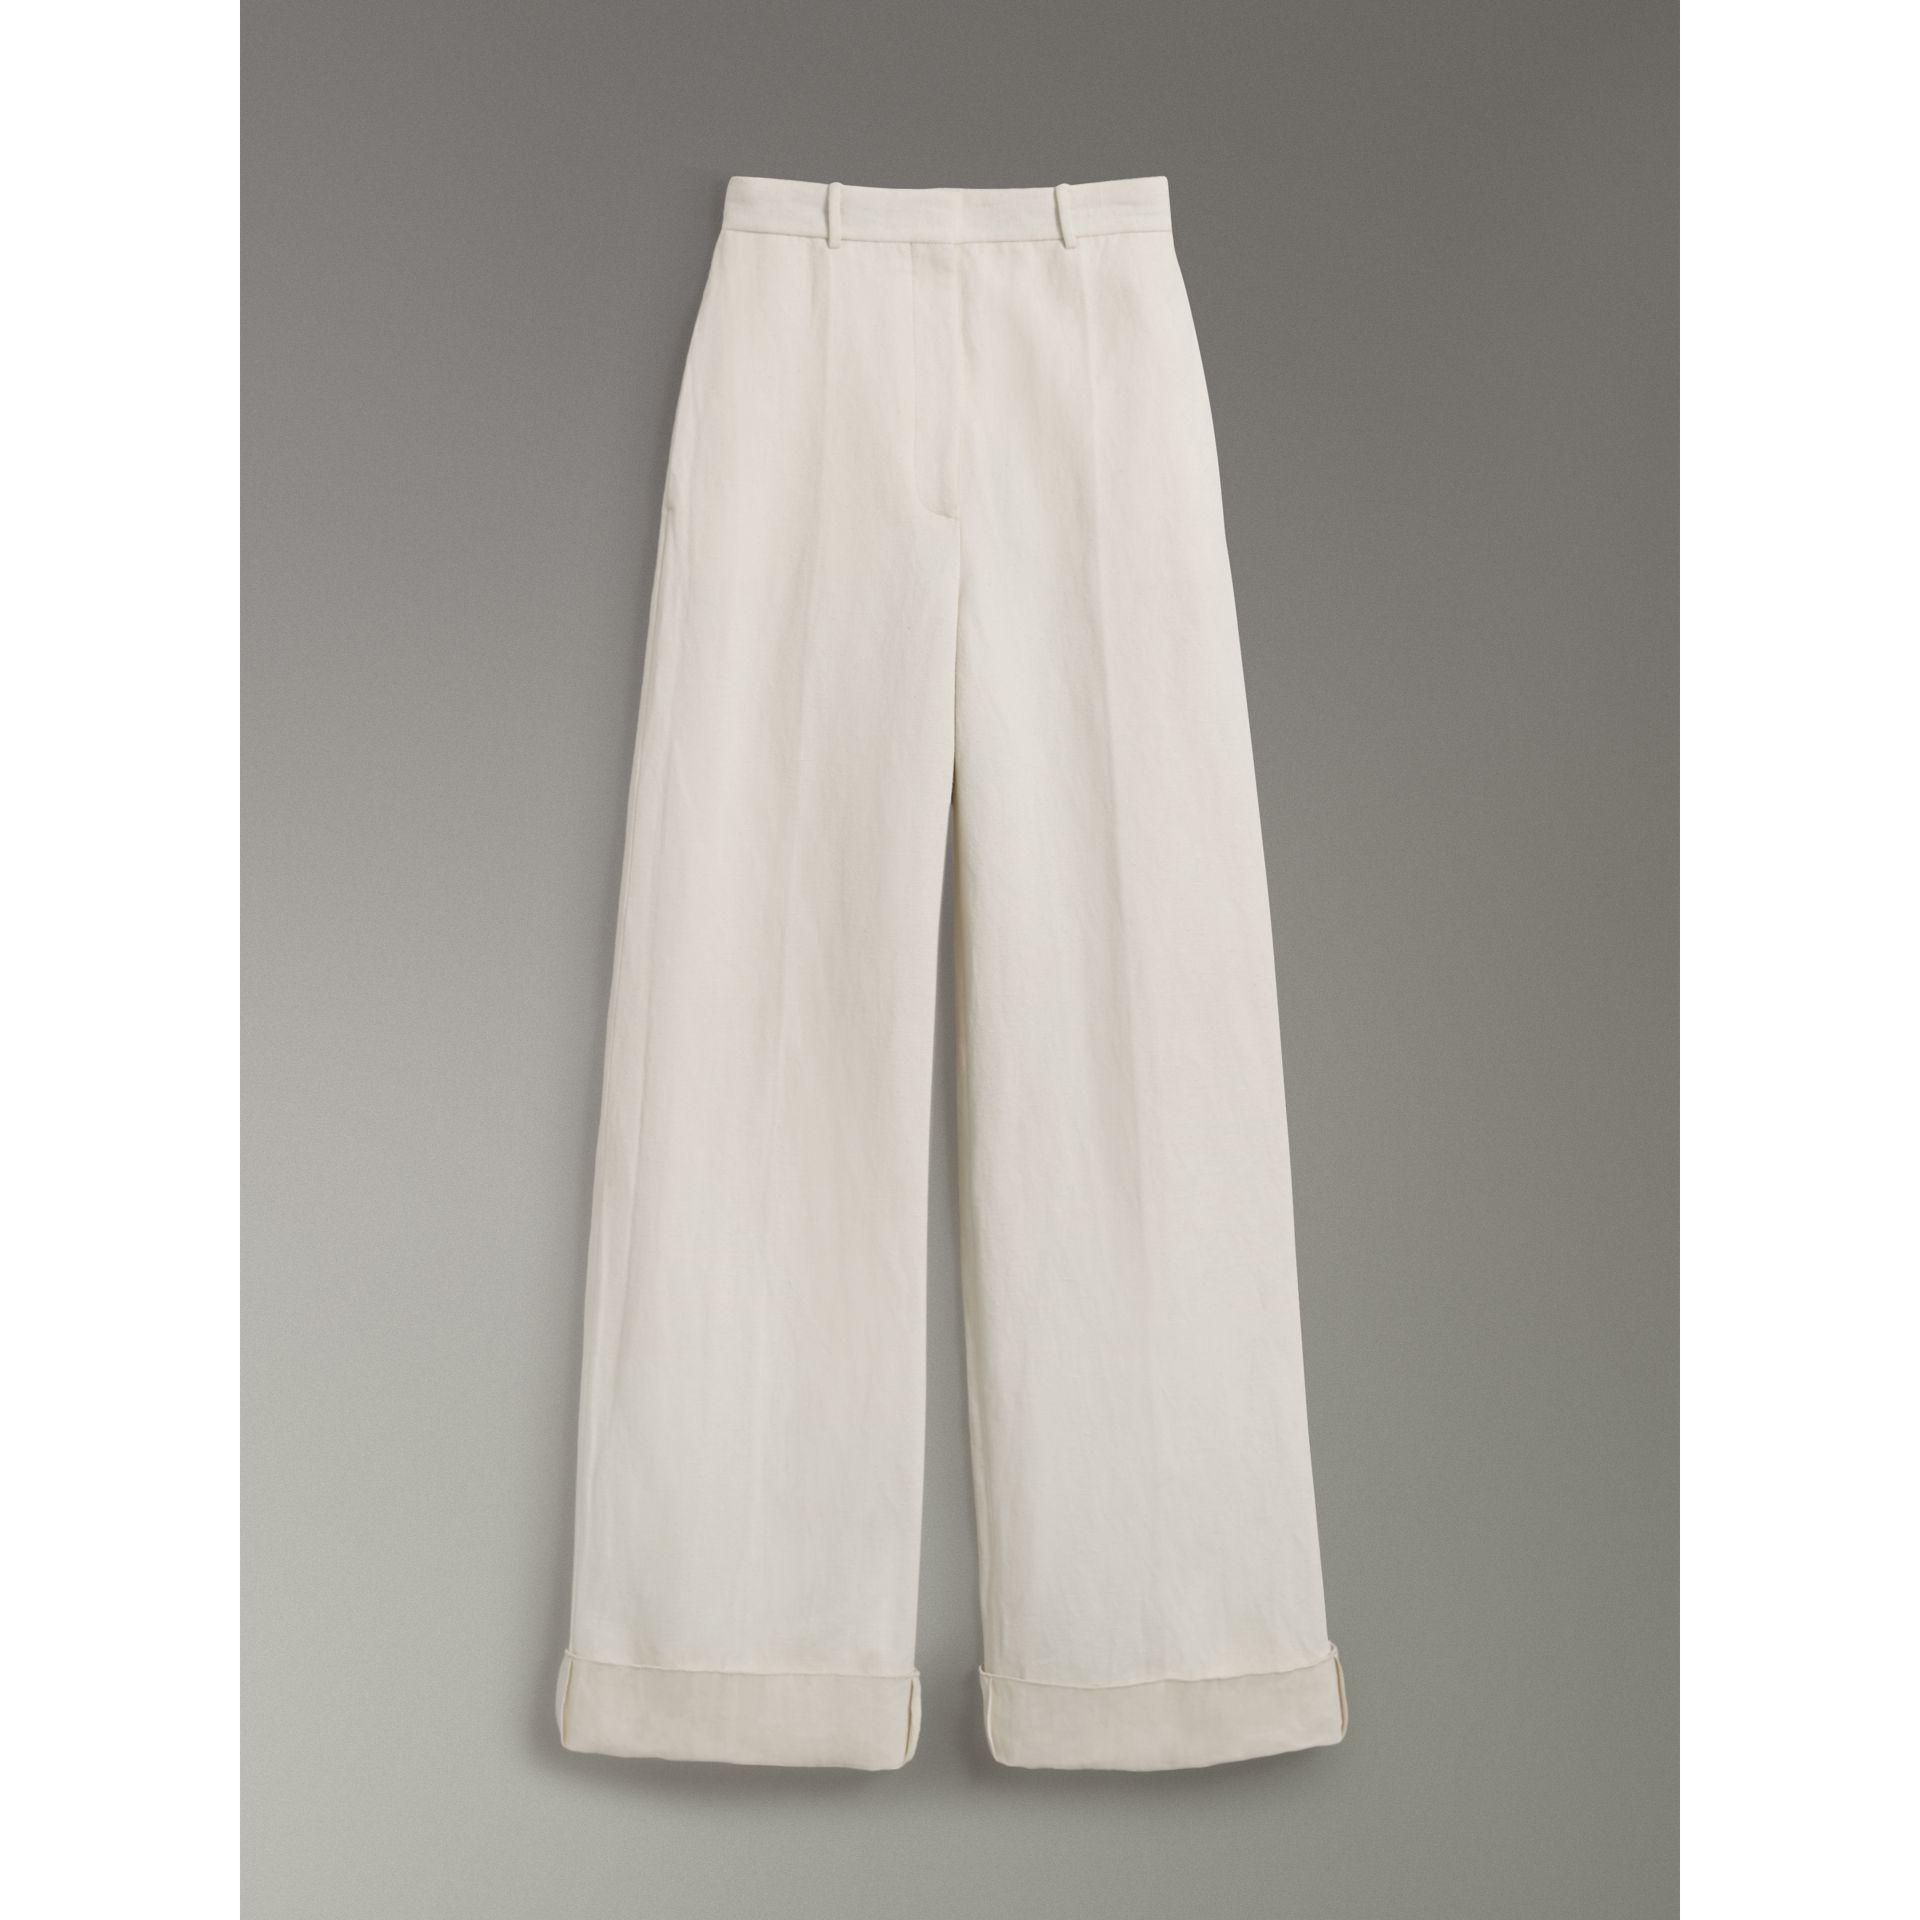 Cotton Linen Canvas Wide-leg Trousers in Off White - Women | Burberry Hong Kong - gallery image 3